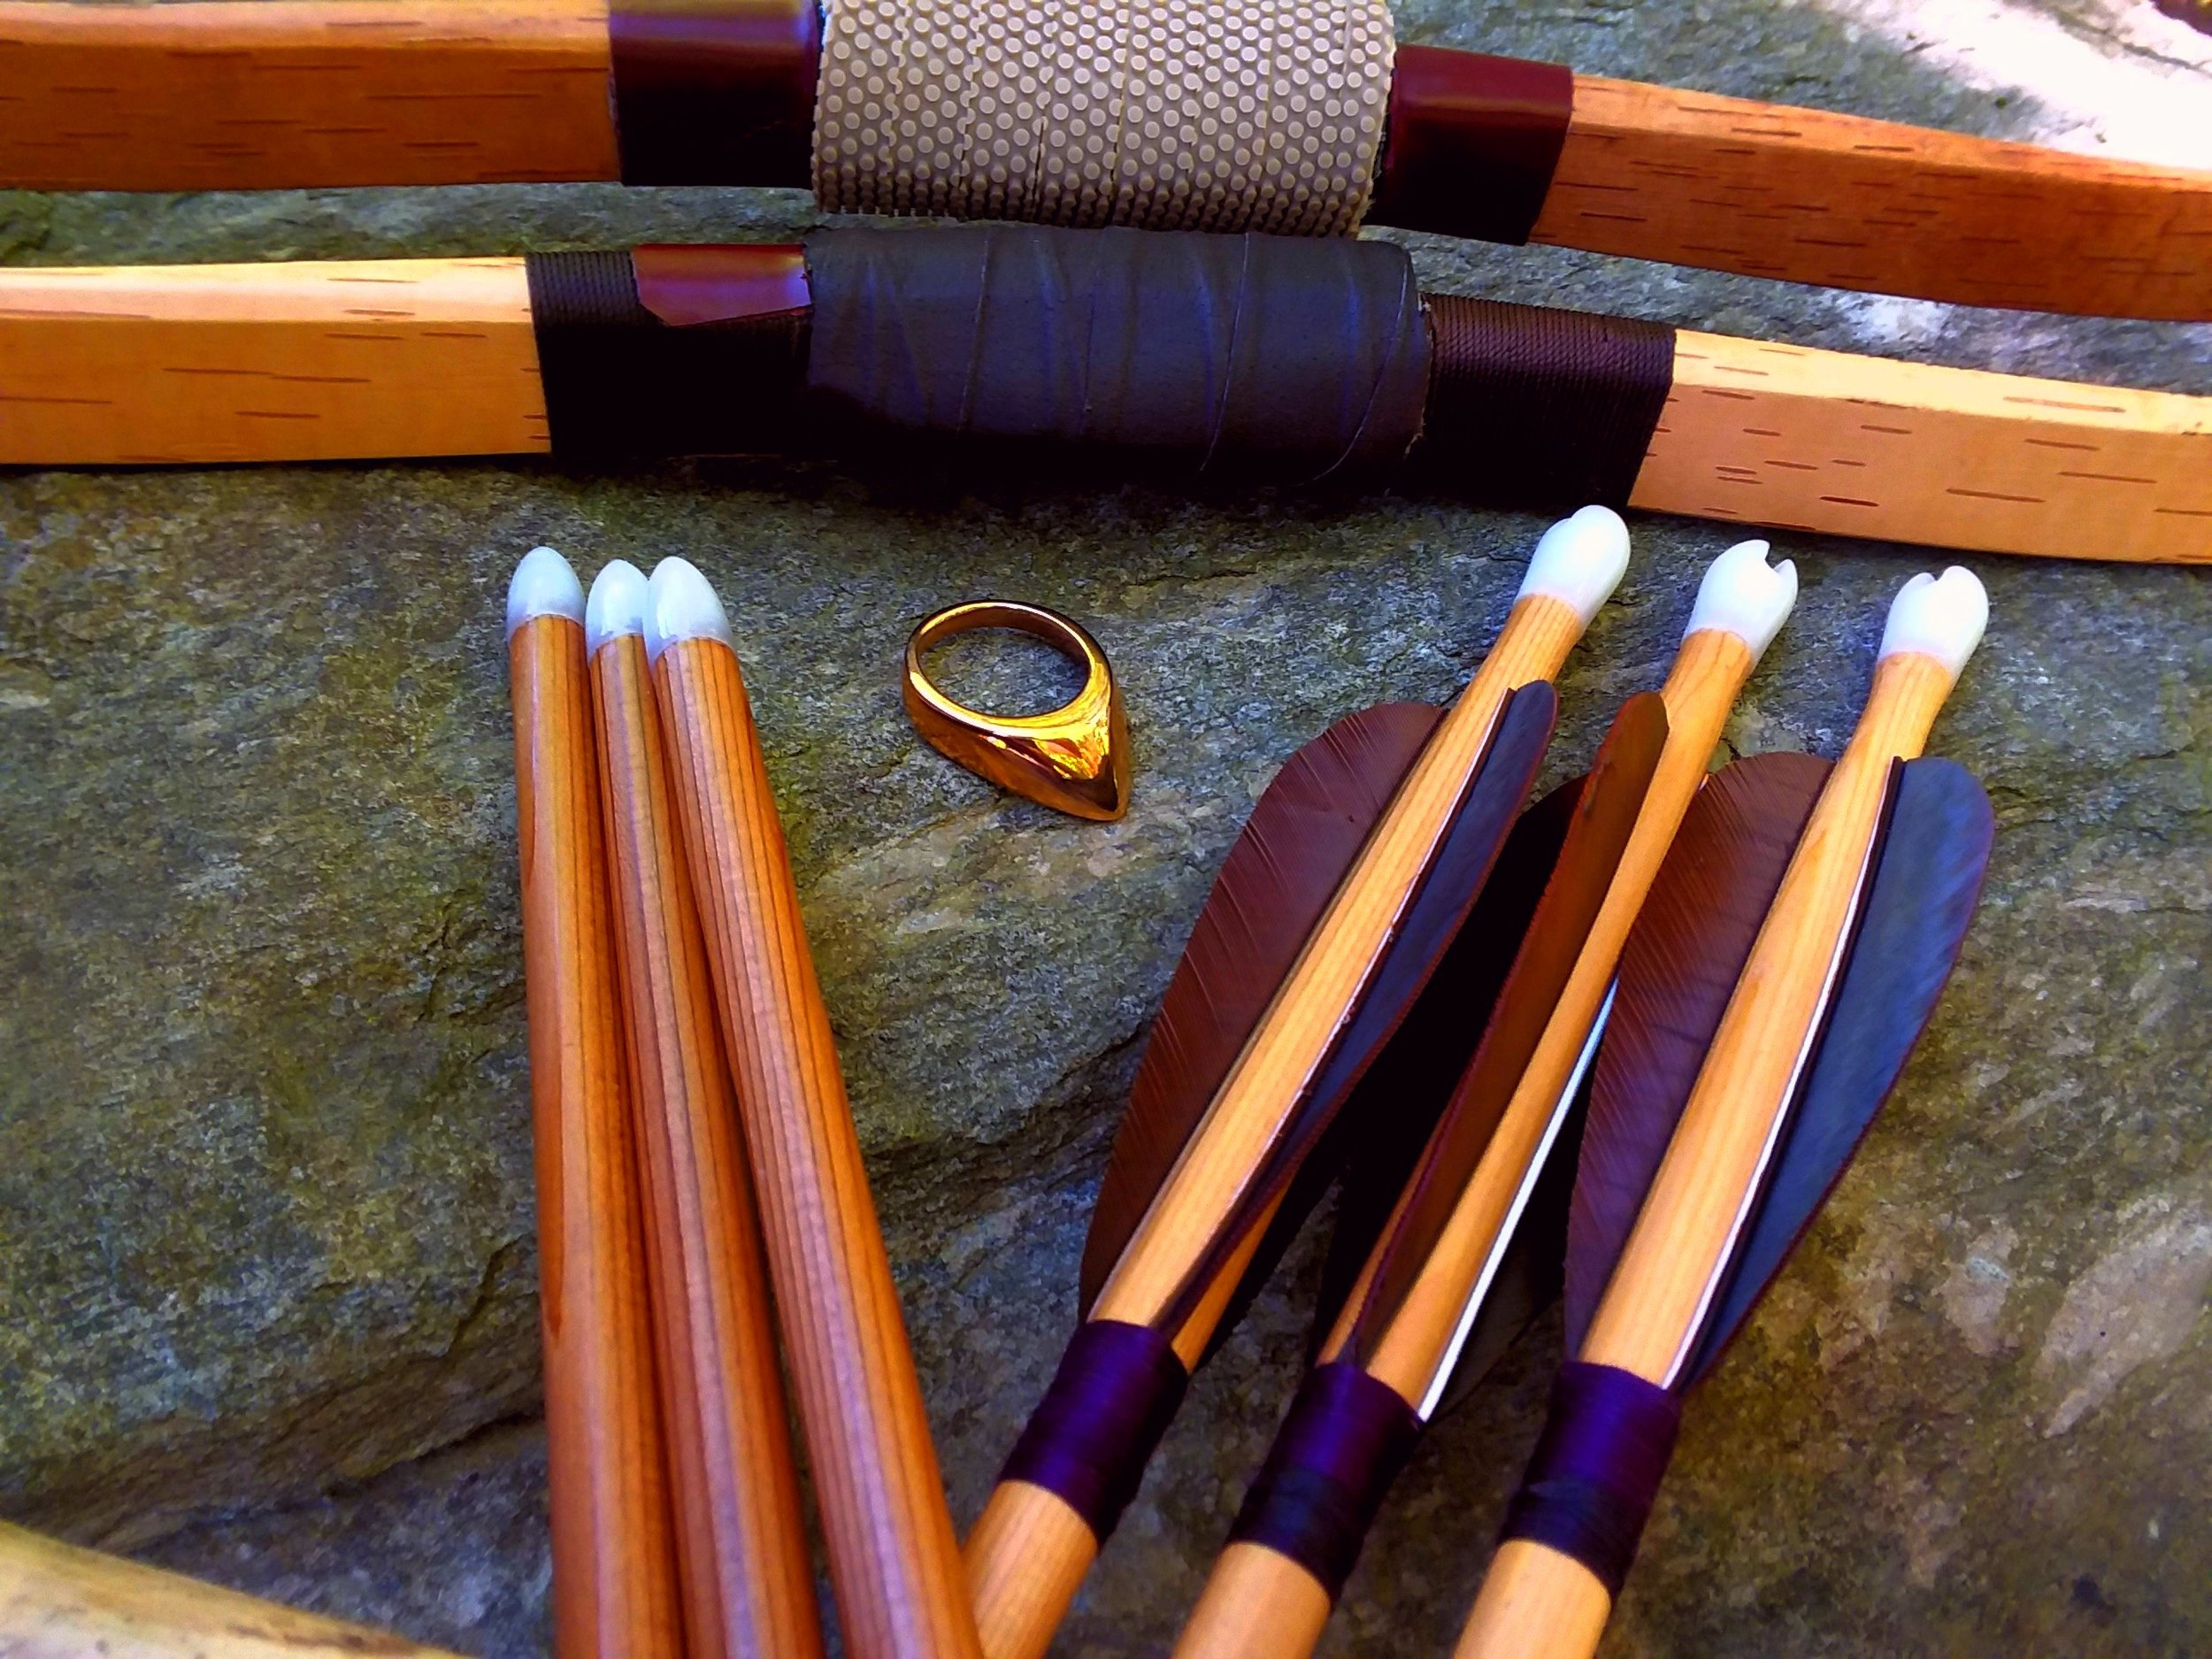 All done. Three lighter cedar arrows against three darker ones. Seen here, anachronistically, against two Korean style bows and our Byzantine style ring. The bright outdoor light really makes the ivory points and nocks pop.